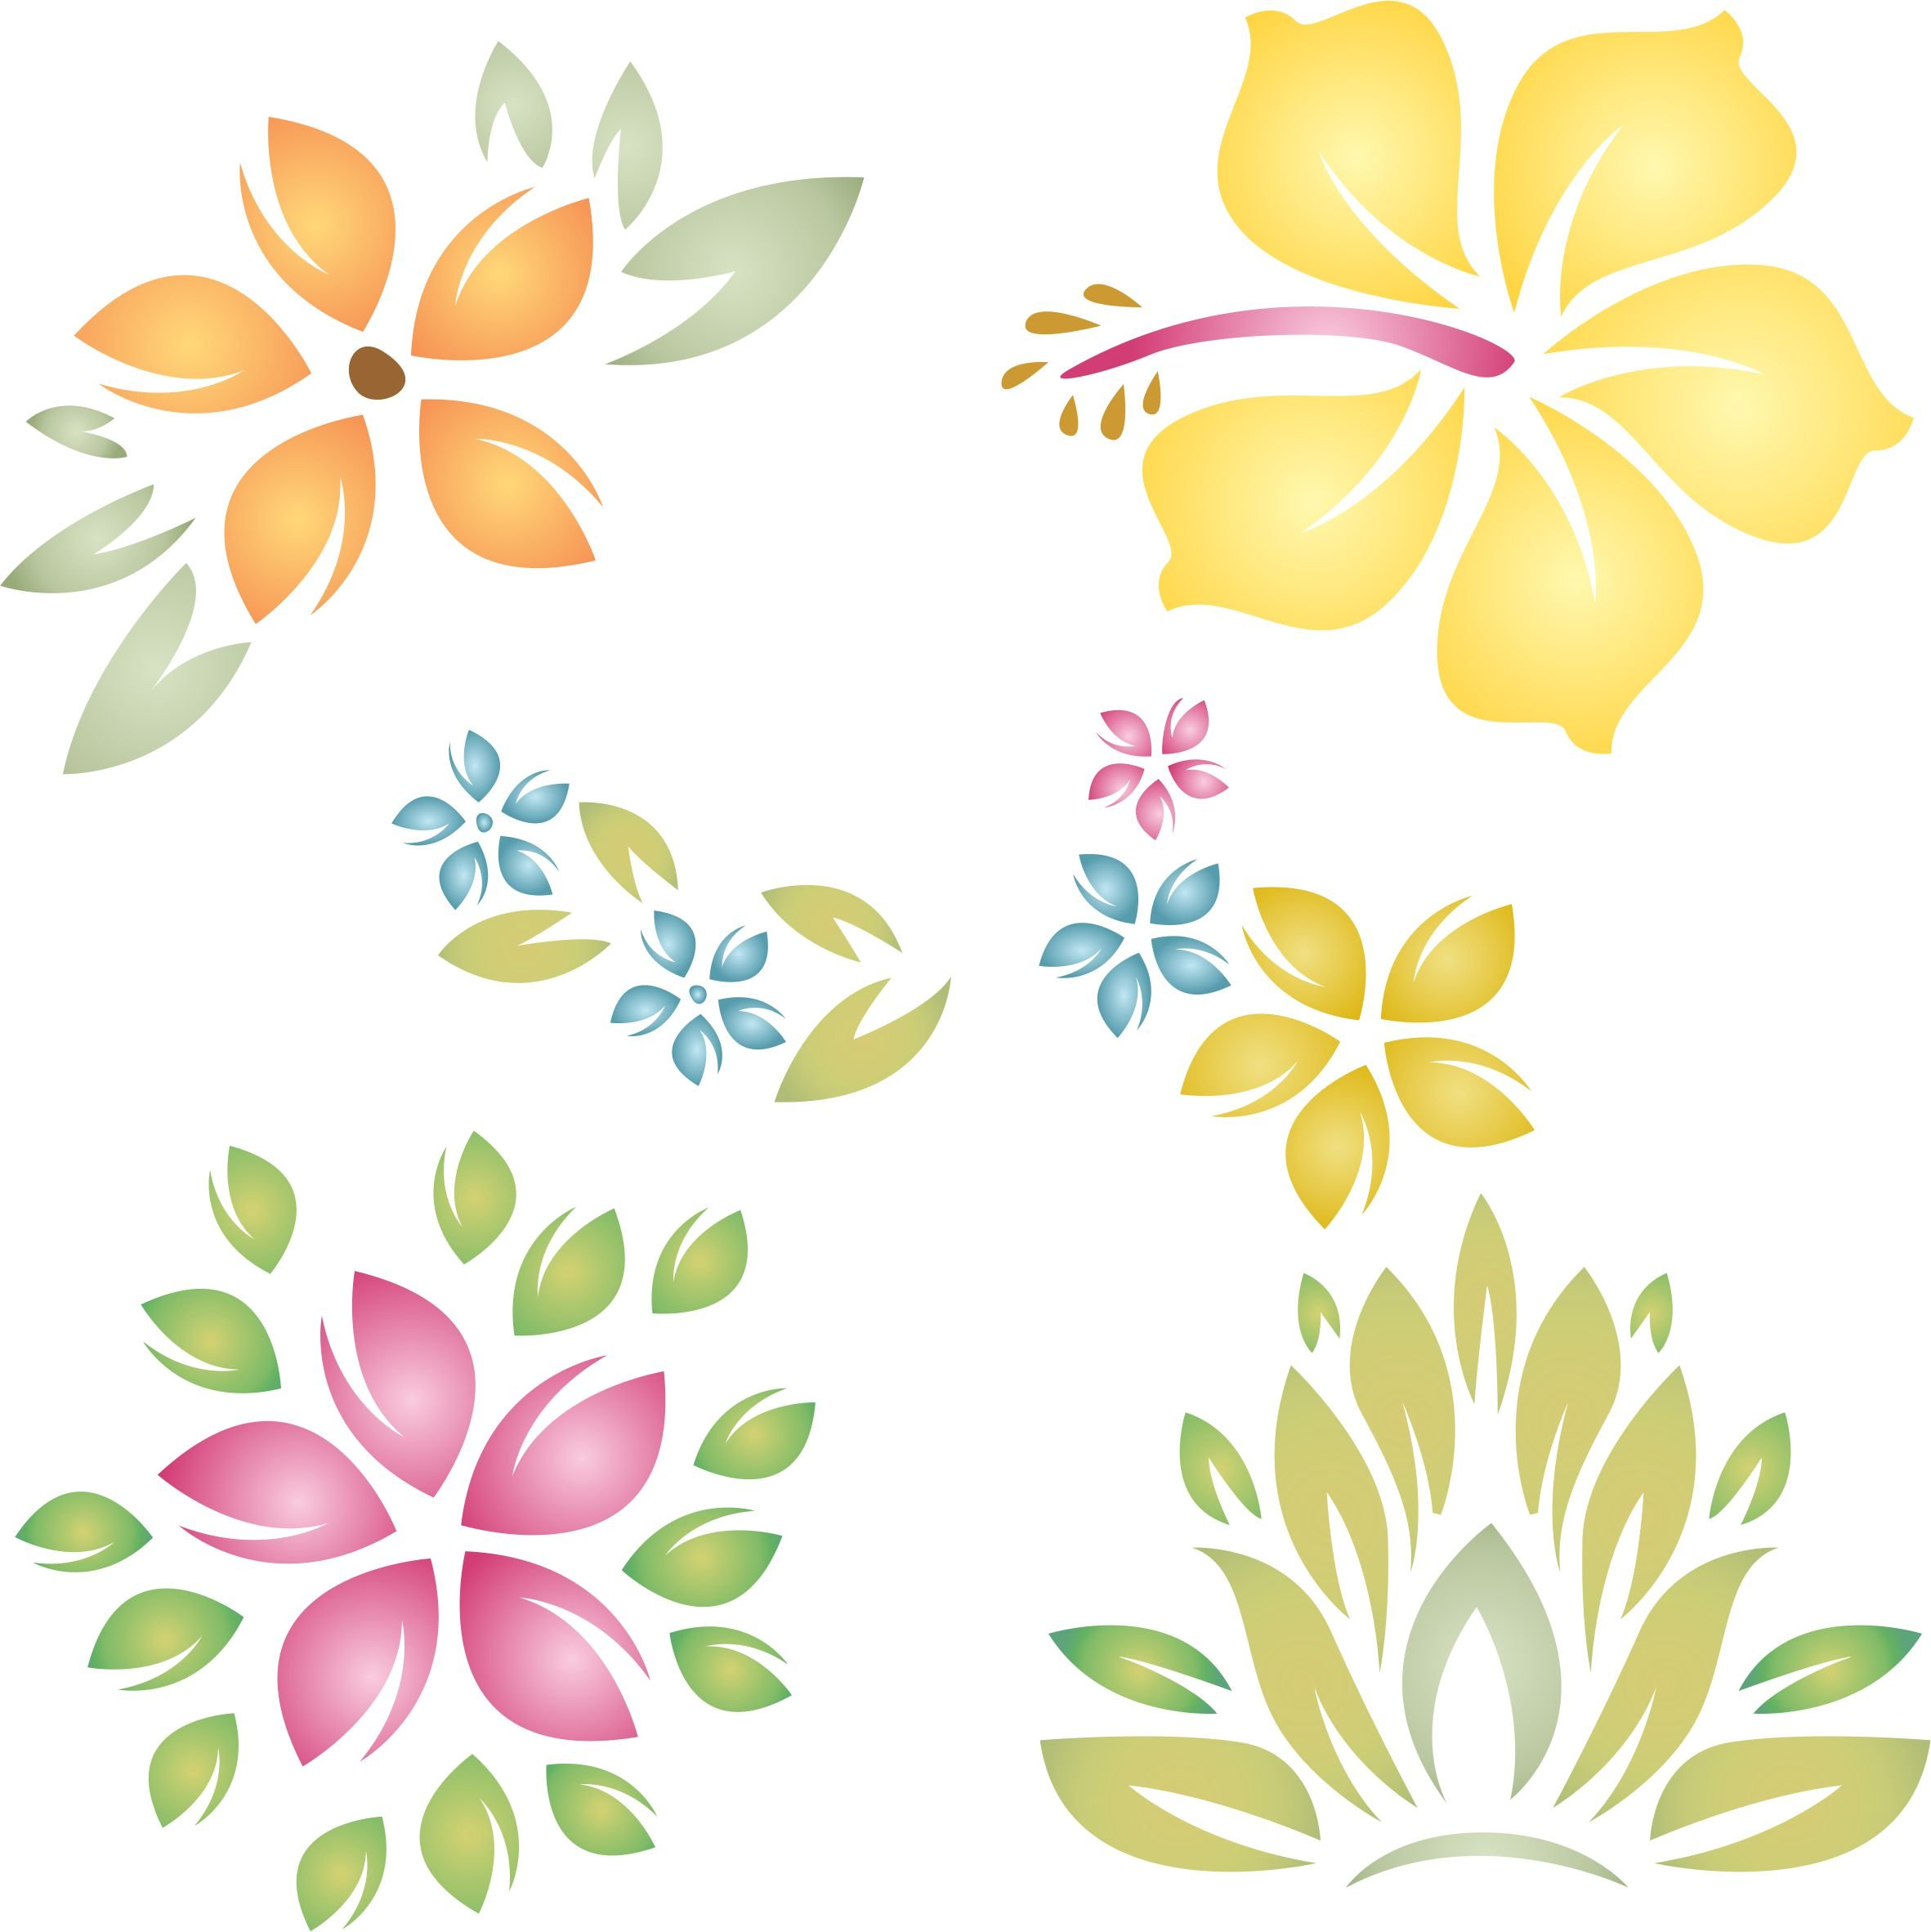 Tropical Flowers Stencil - (size 6.5''w x 6.5''h) Reusable Wall Stencils for Painting - Best Quality Template Allover Wallpaper ideas - Use on Walls, Floors, Fabrics, Glass, Wood, and More... by Stencils for Walls